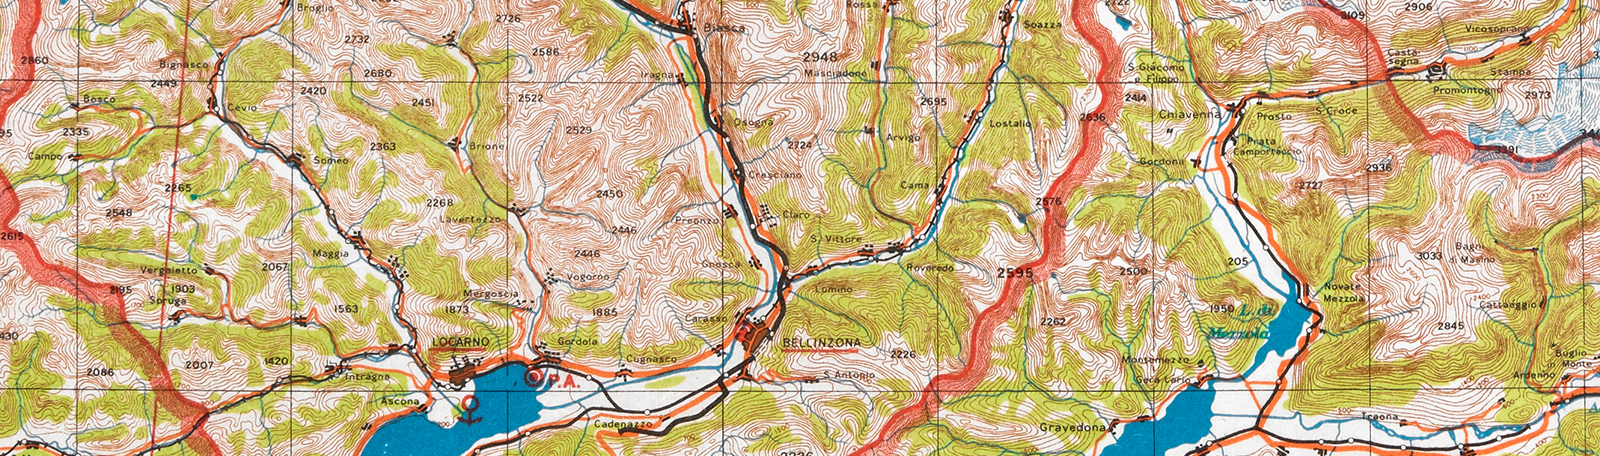 MI9's escape and evasion mapping programme banner CC.5.a.421 - St. Gotthard map